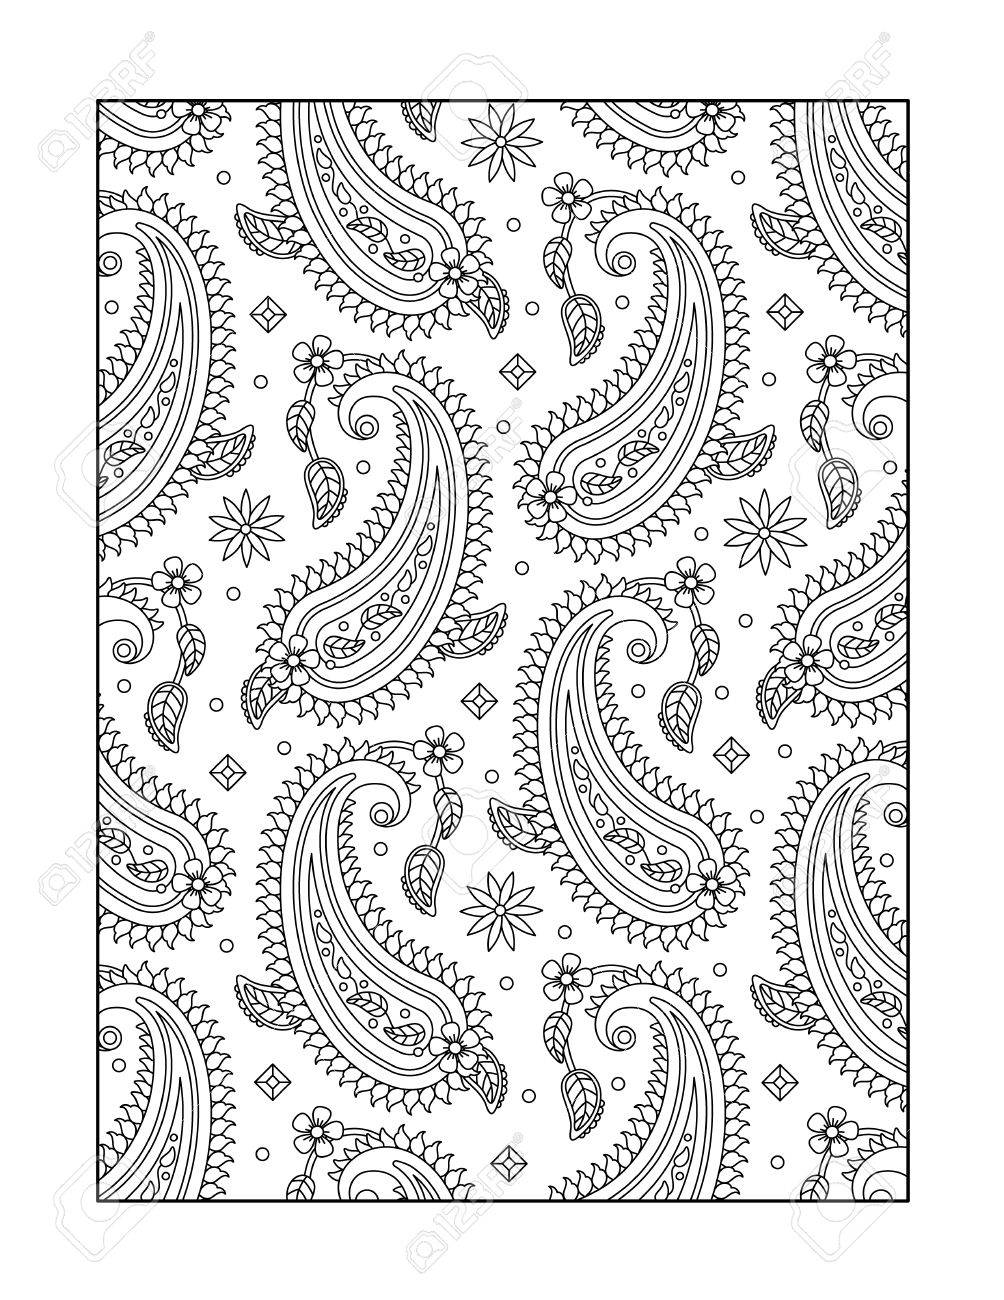 paisley pattern coloring page for adults children ok too or